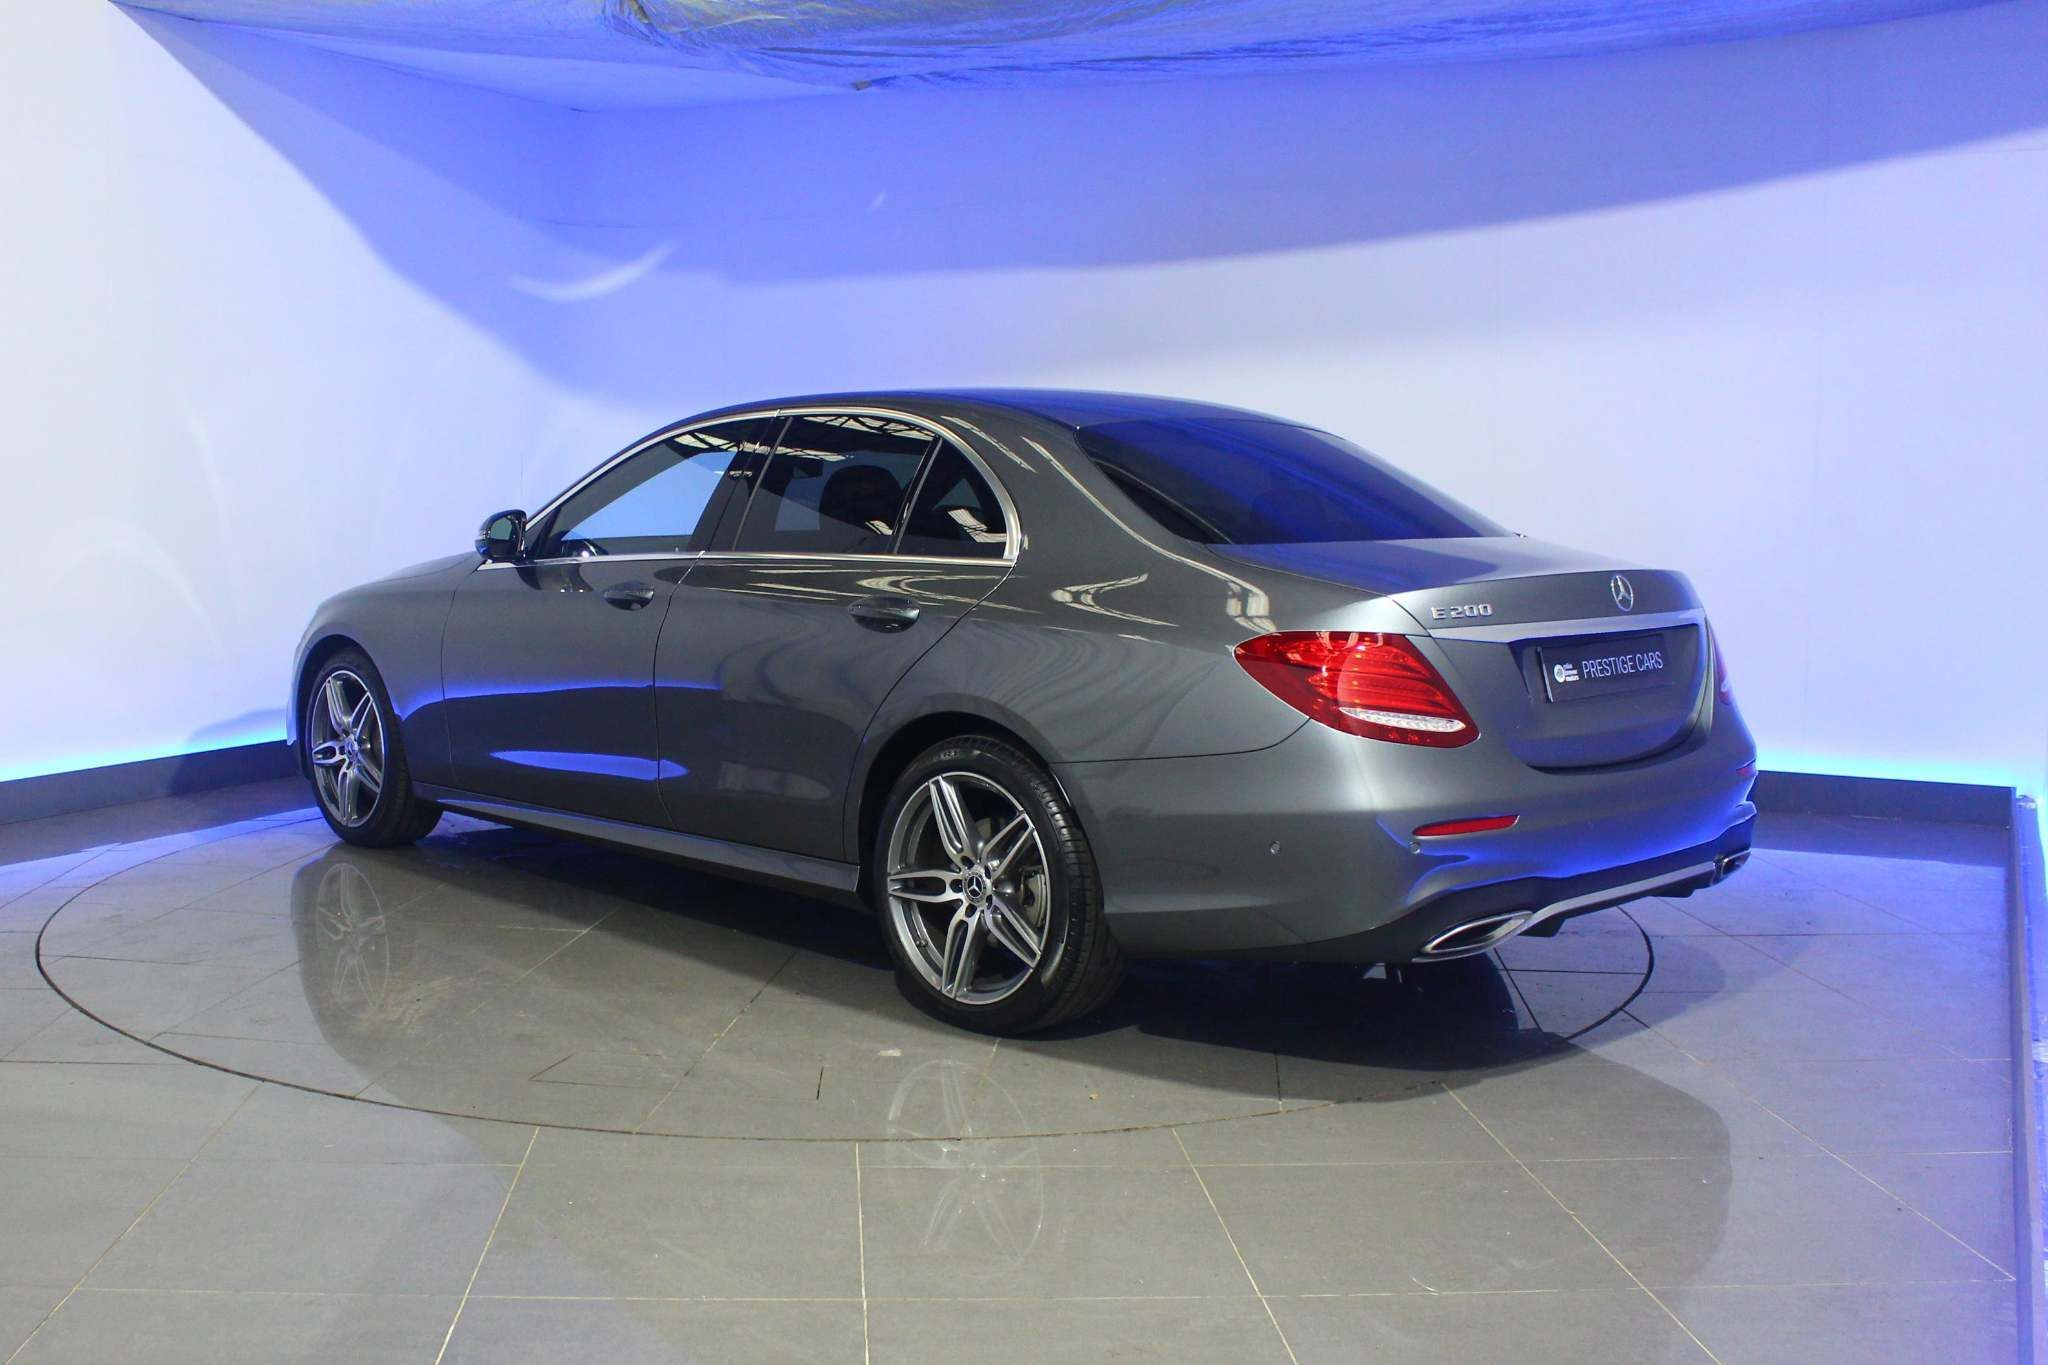 Used Mercedes-Benz E Class 2.0 E200 Amg Line G-Tronic+ (s/s) 4dr